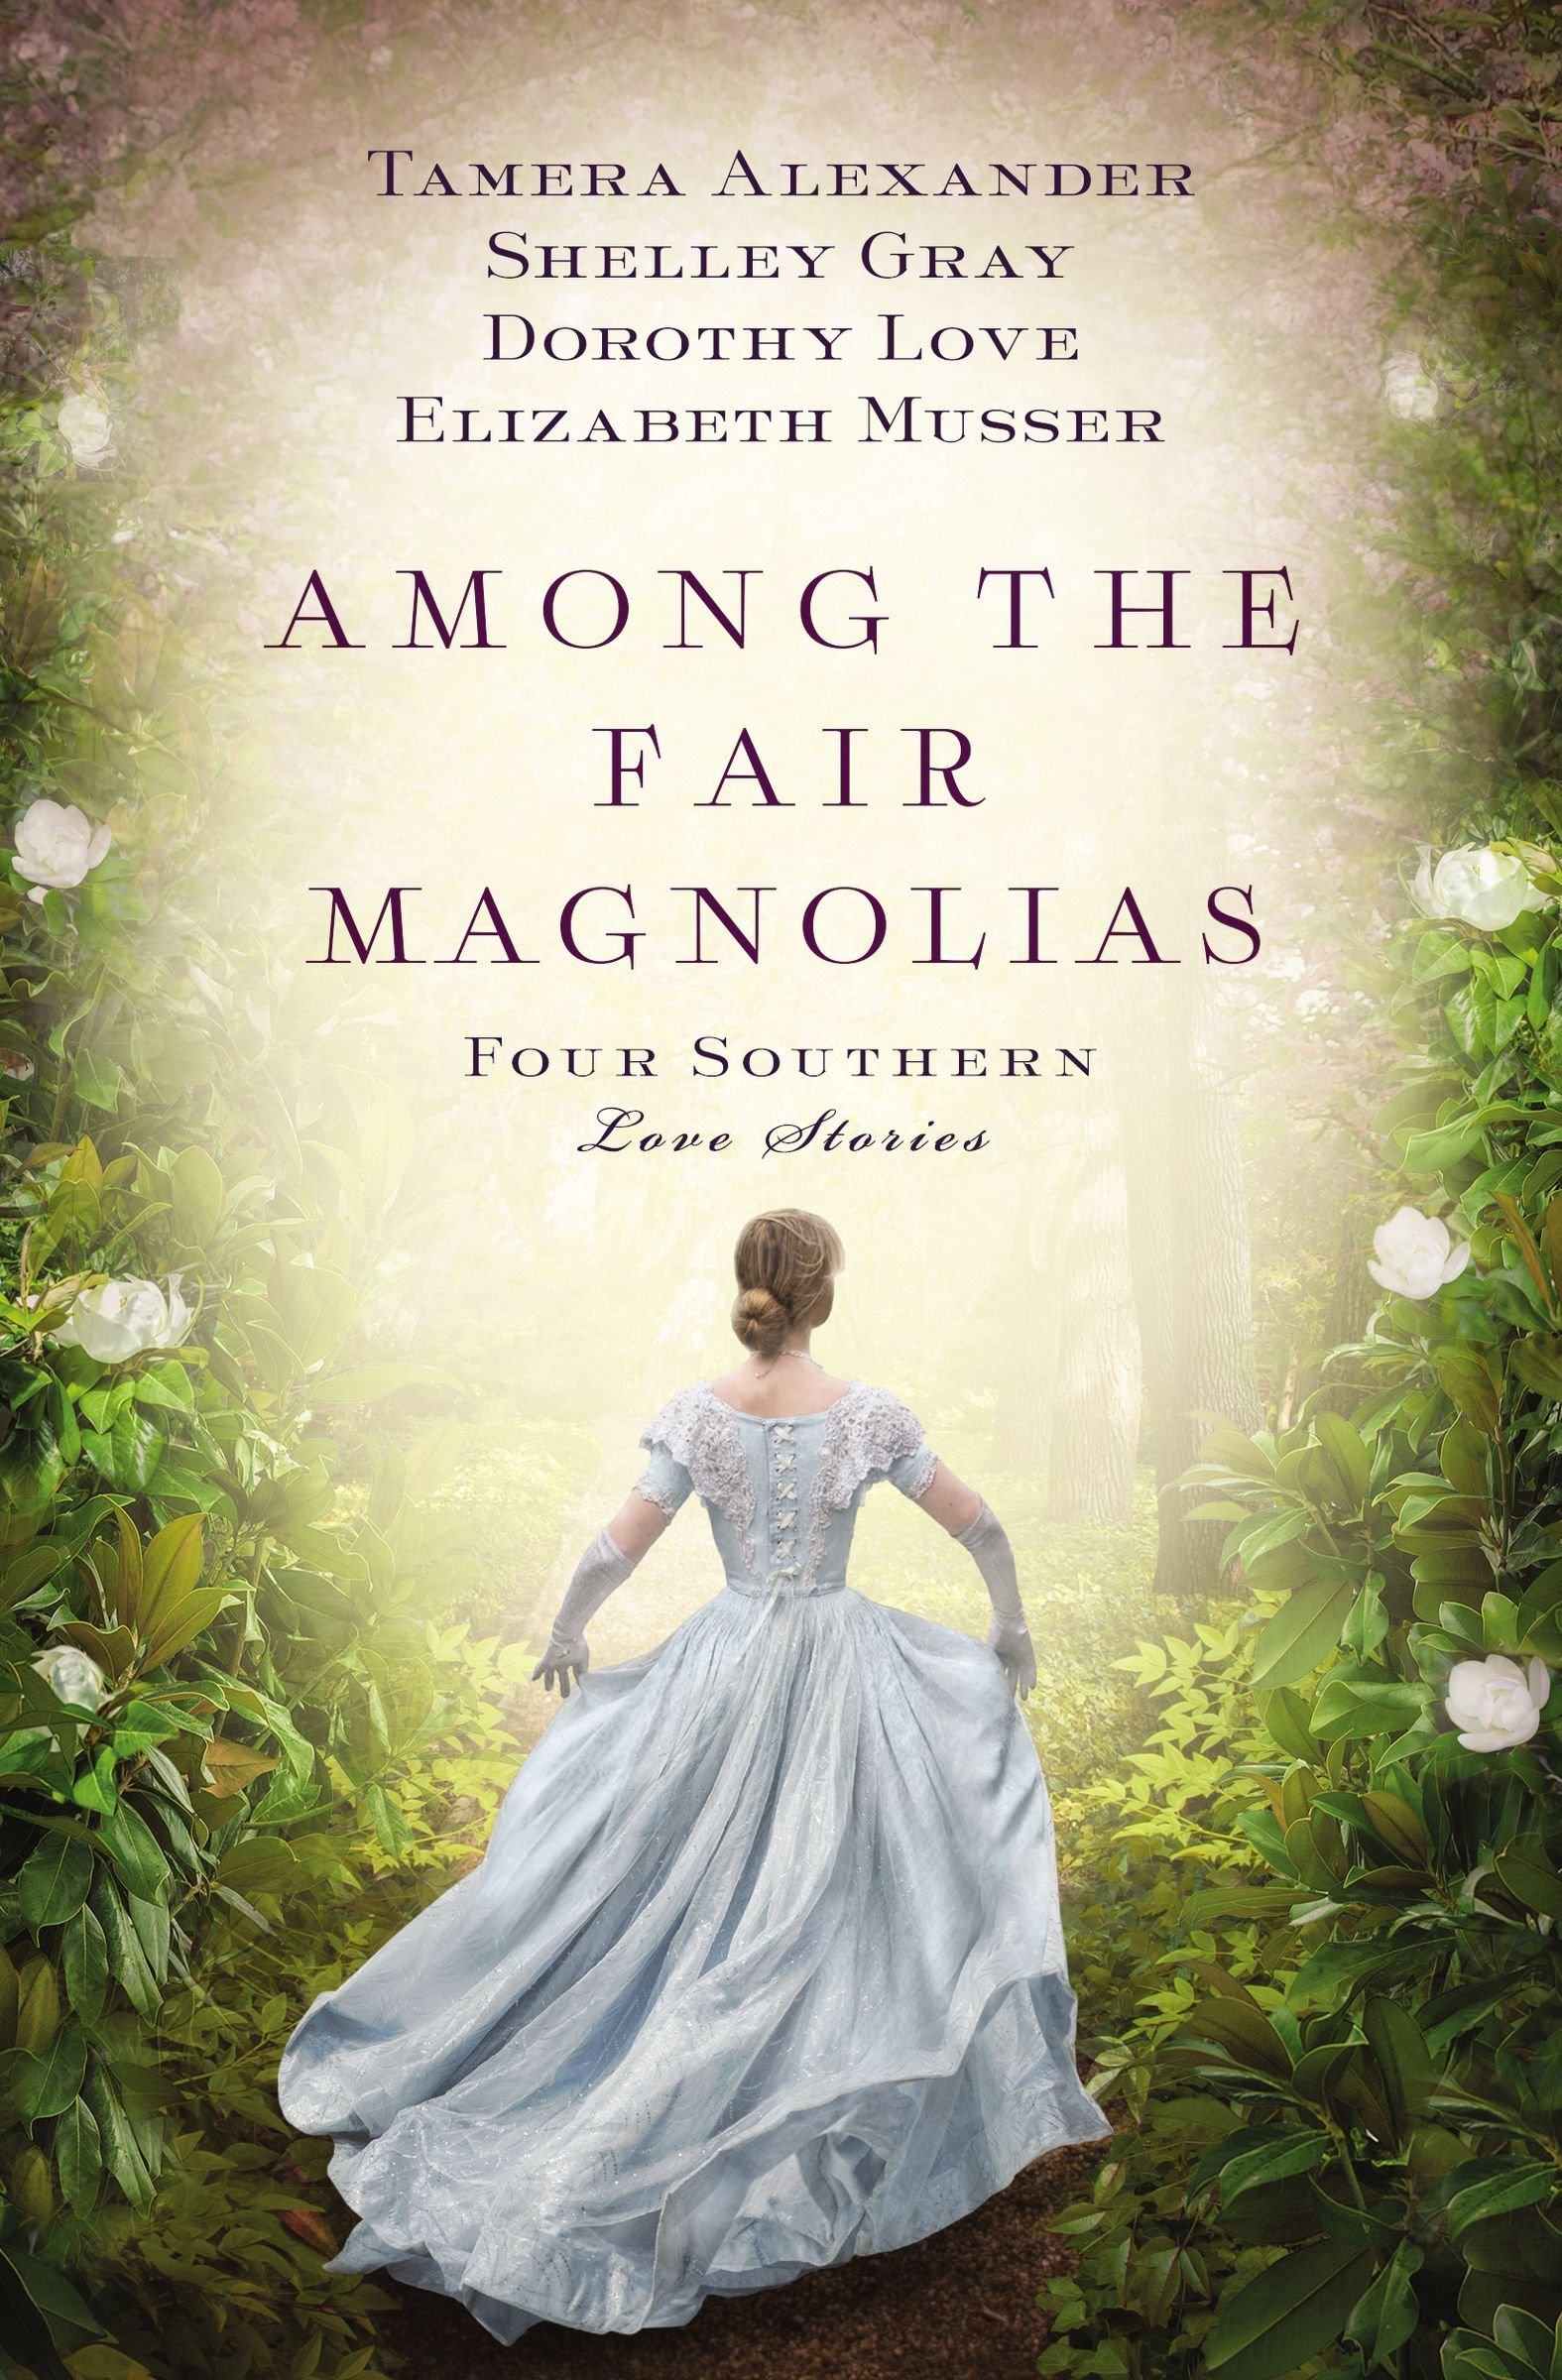 Image result for among the fair magnolia four southern love stories